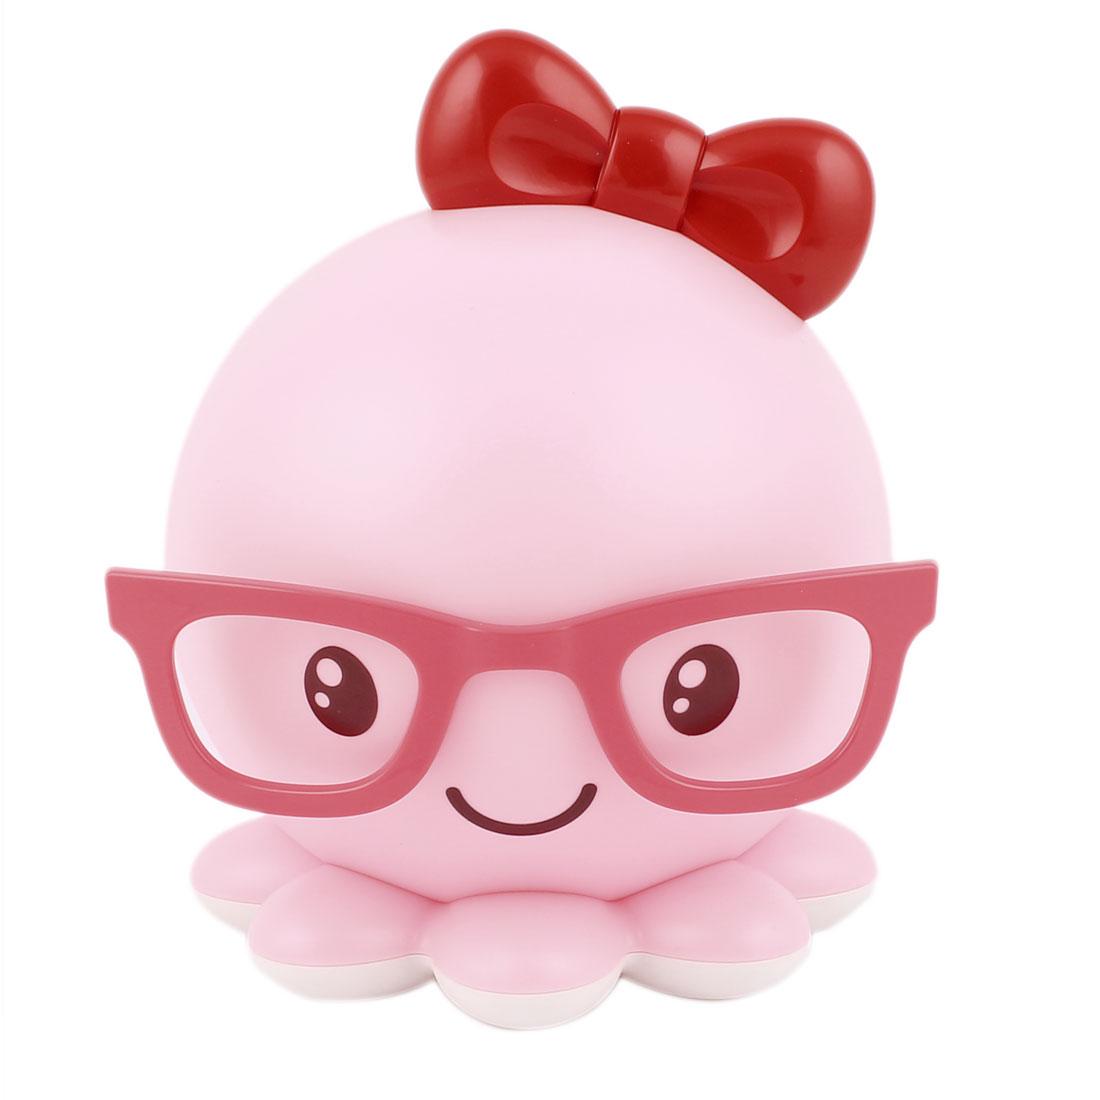 0.3W DC 5V Octopus Lamp LED Energy-saving Rechargeable Night Bedside Lamp Pink